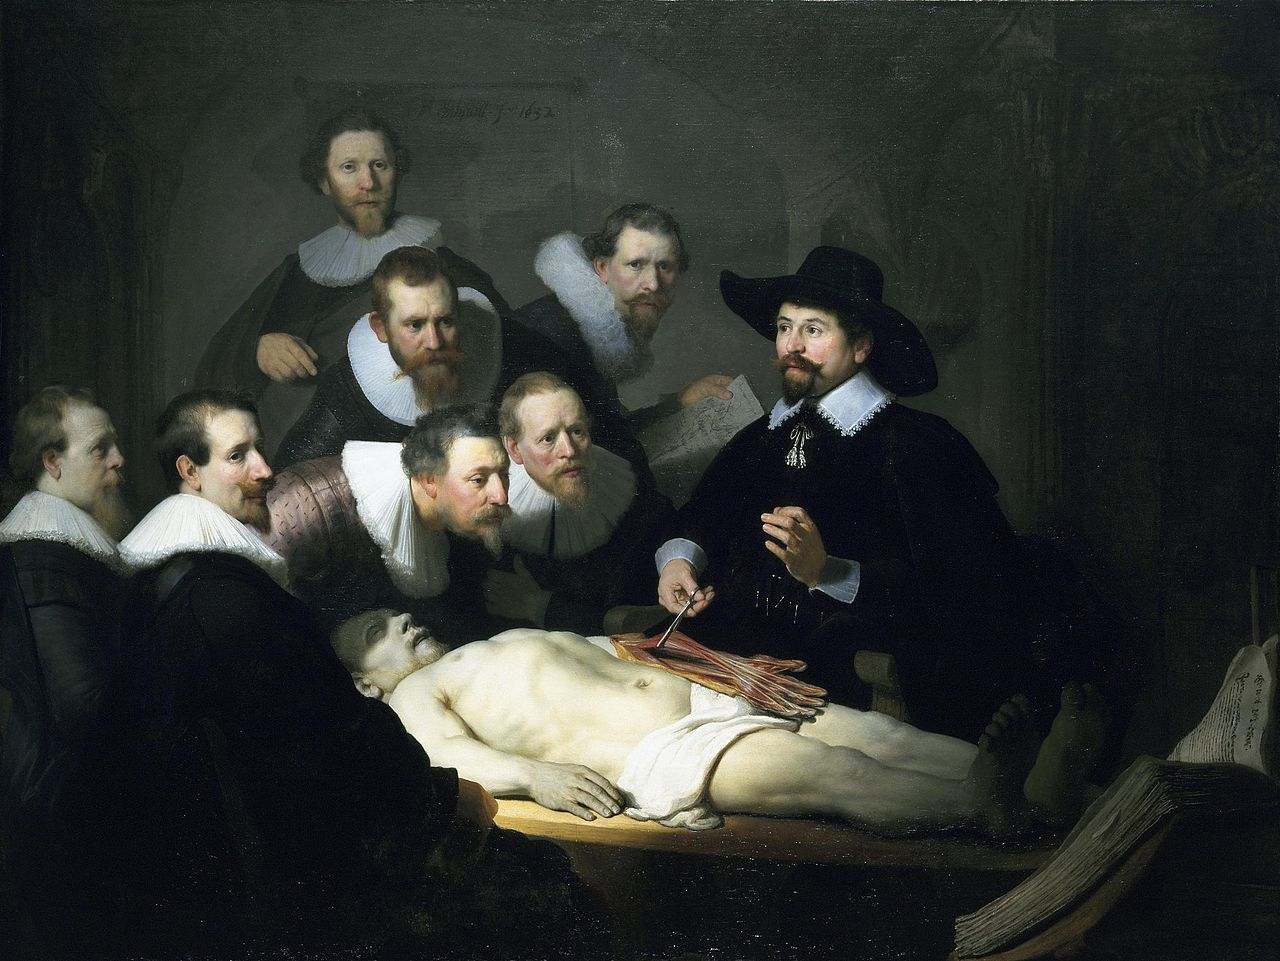 The Anatomy Lesson.